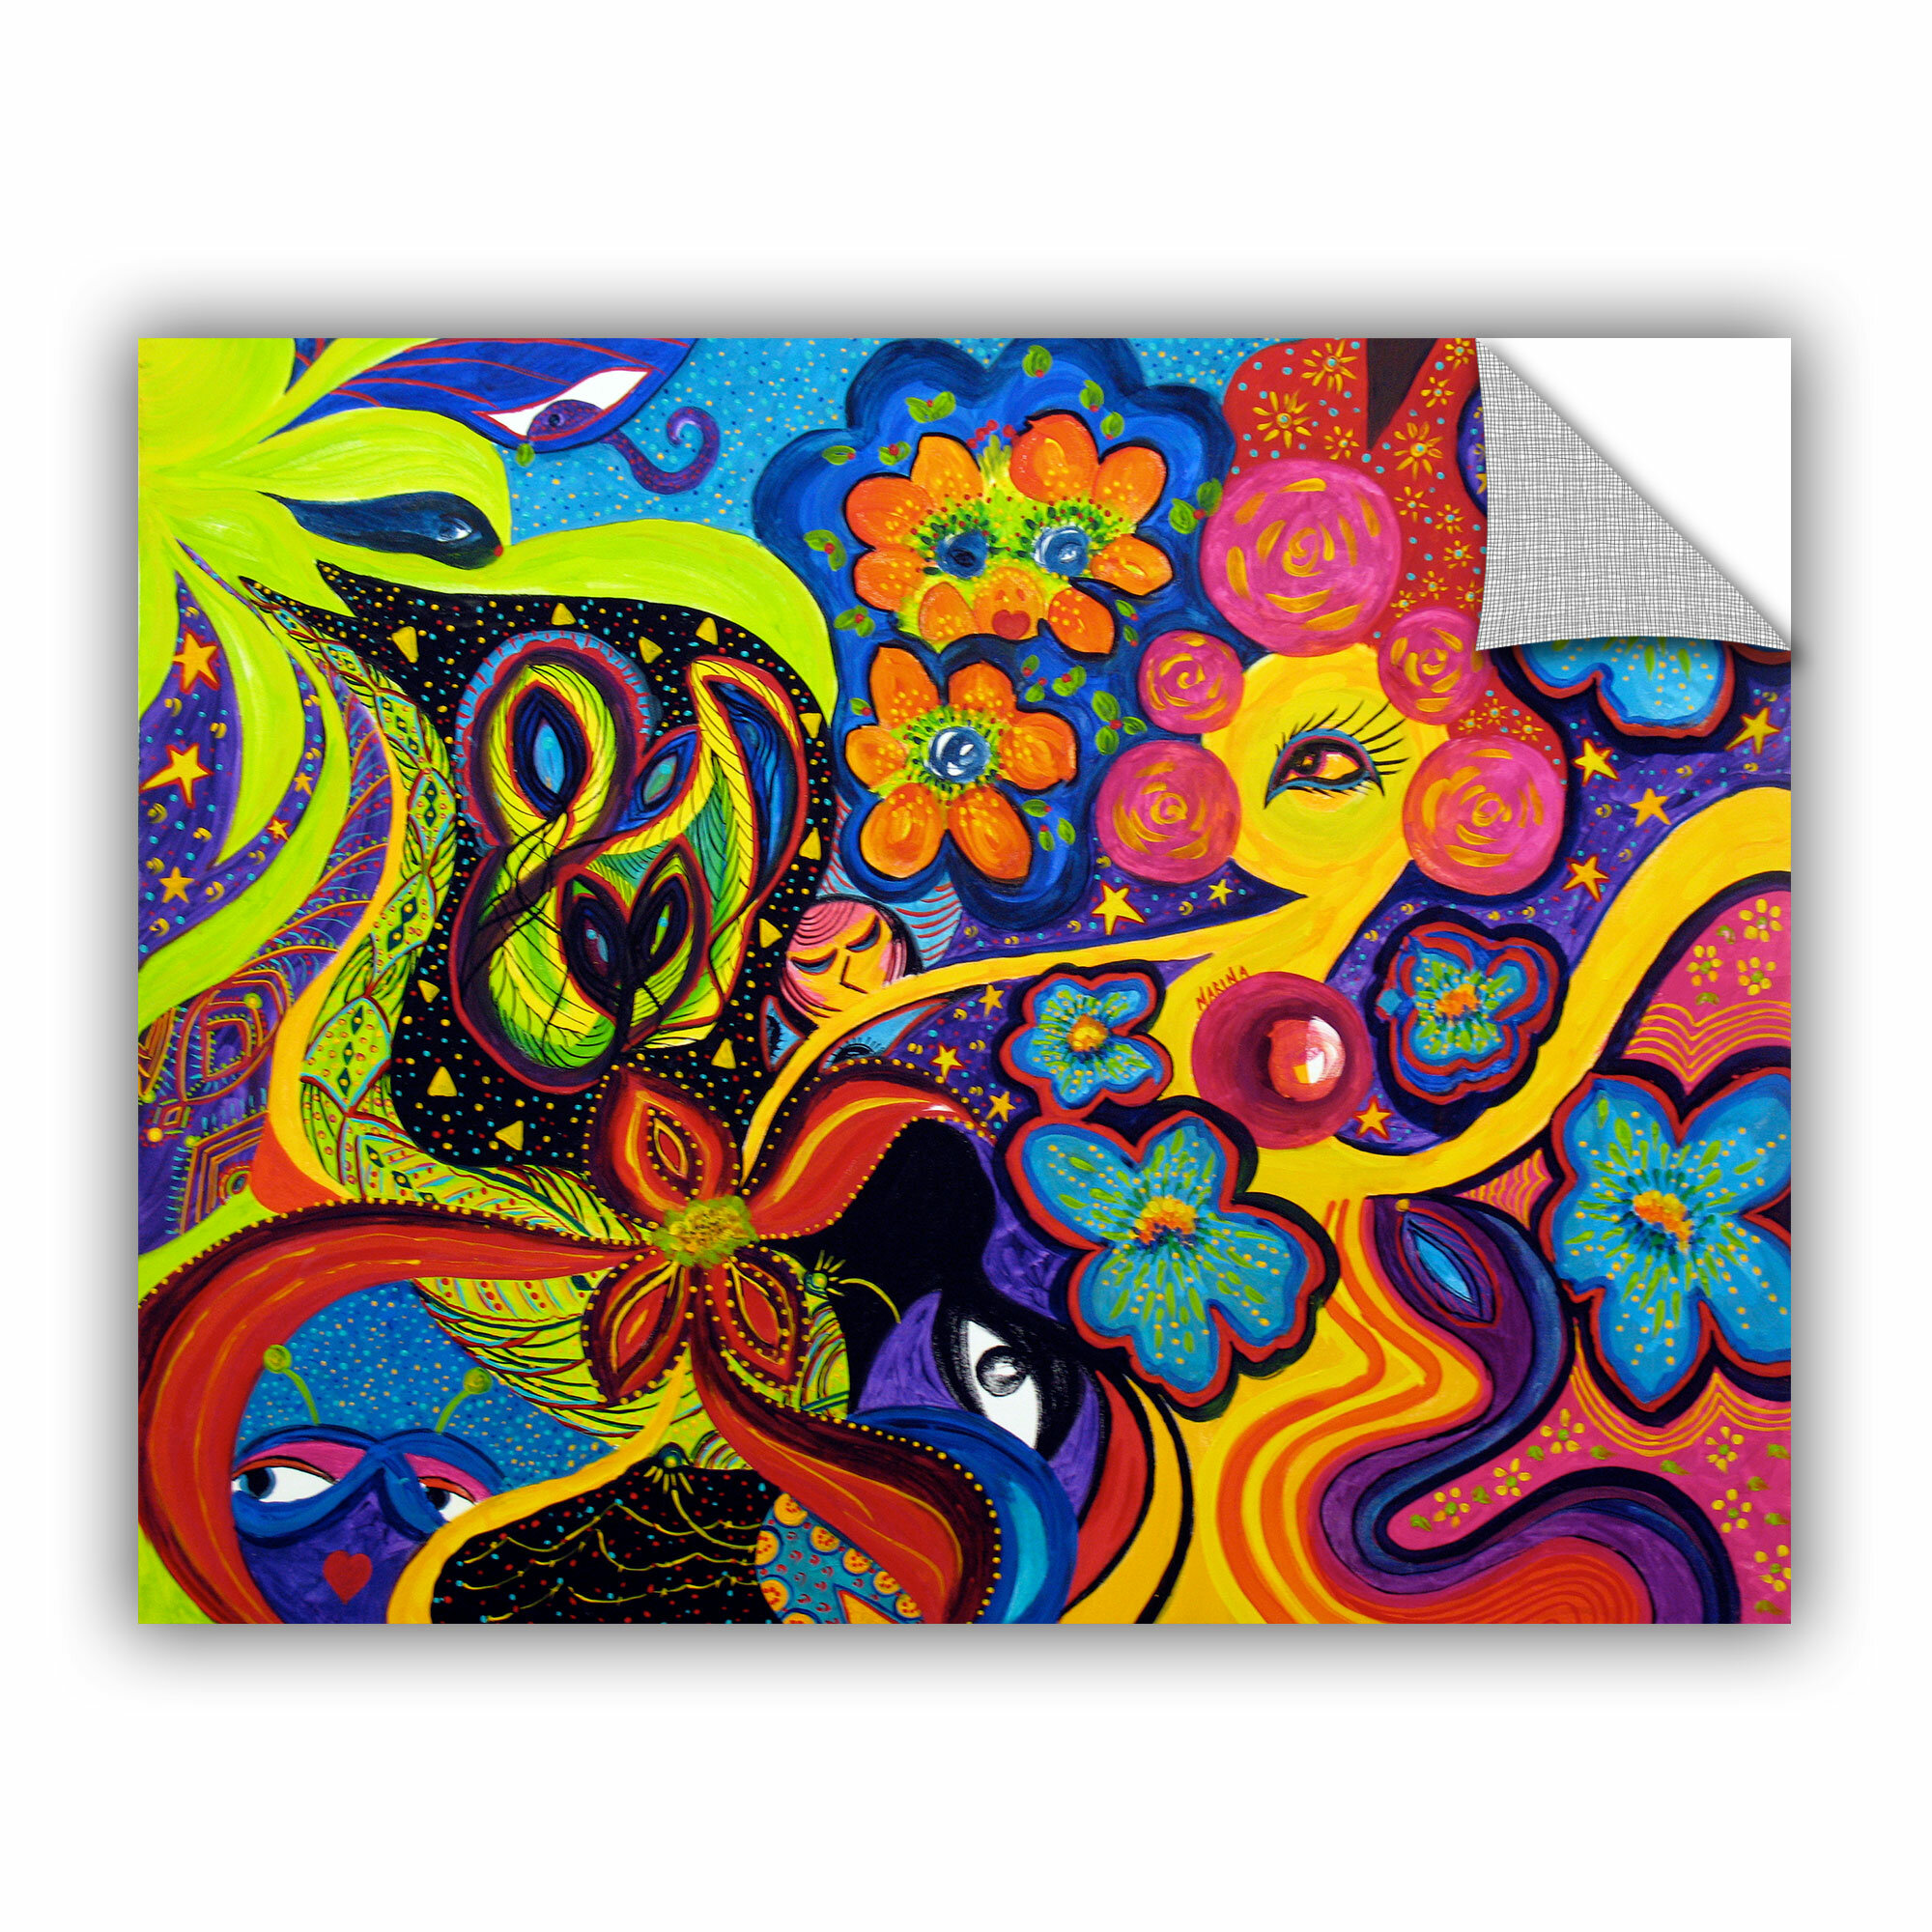 ArtWall Marina Petros Hearts and Flowers Art Appeelz Removable Wall Art Graphic 24 by 32